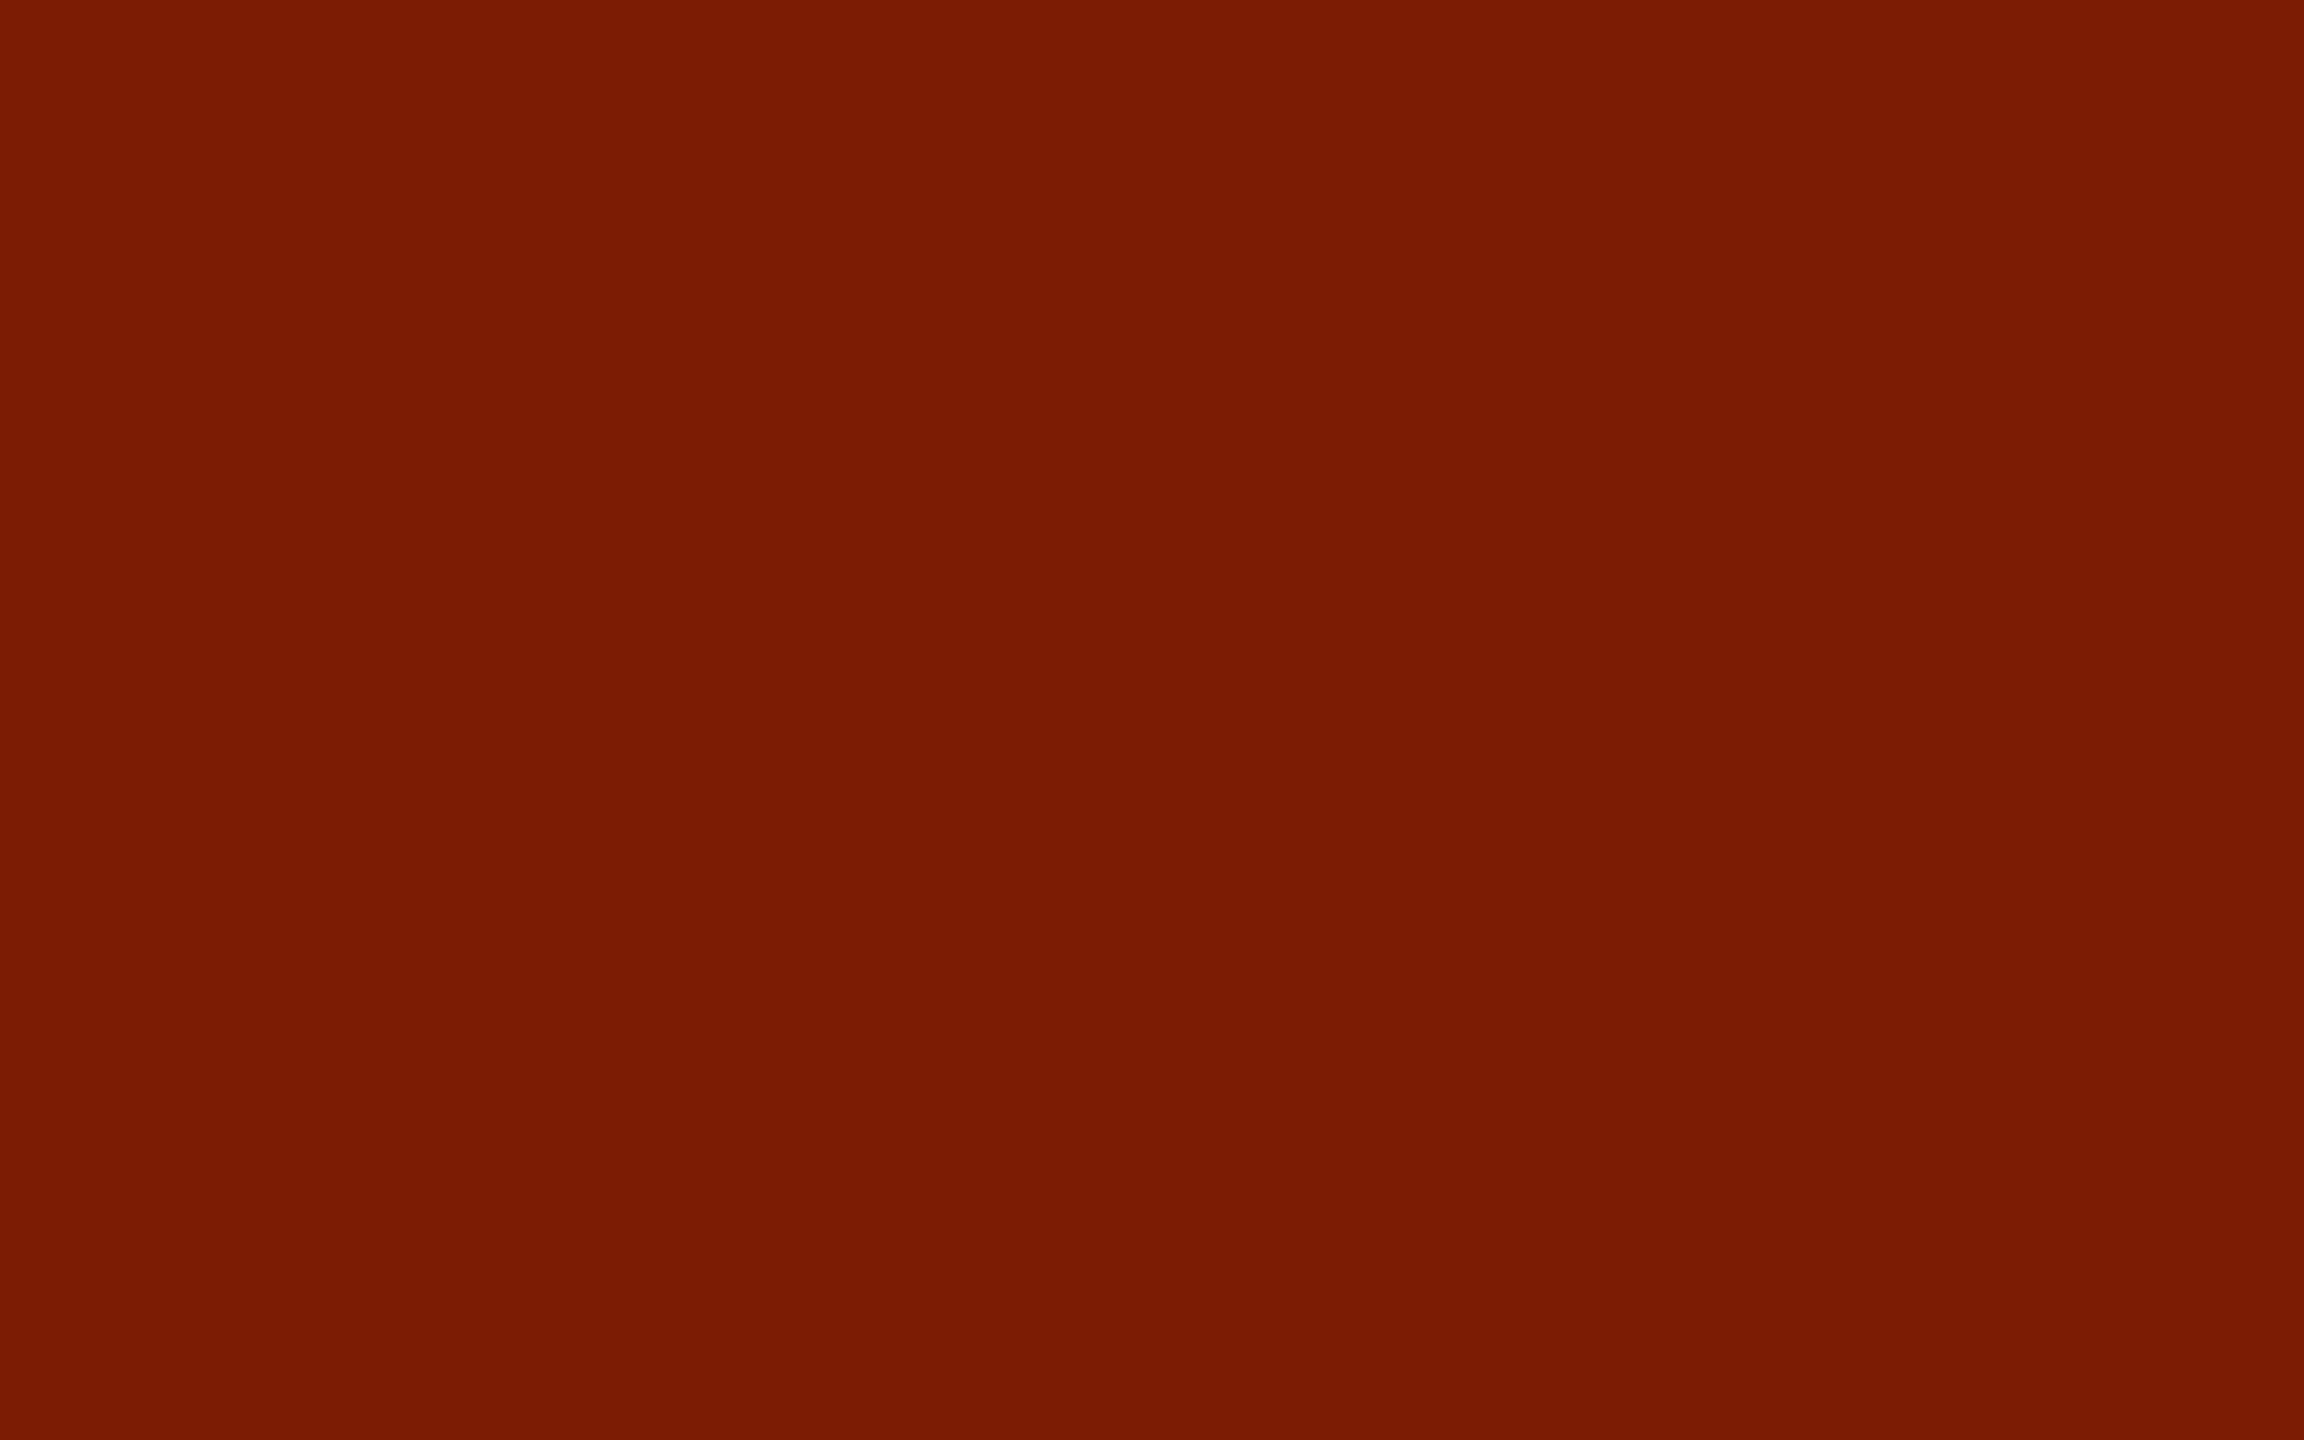 2304x1440 Kenyan Copper Solid Color Background